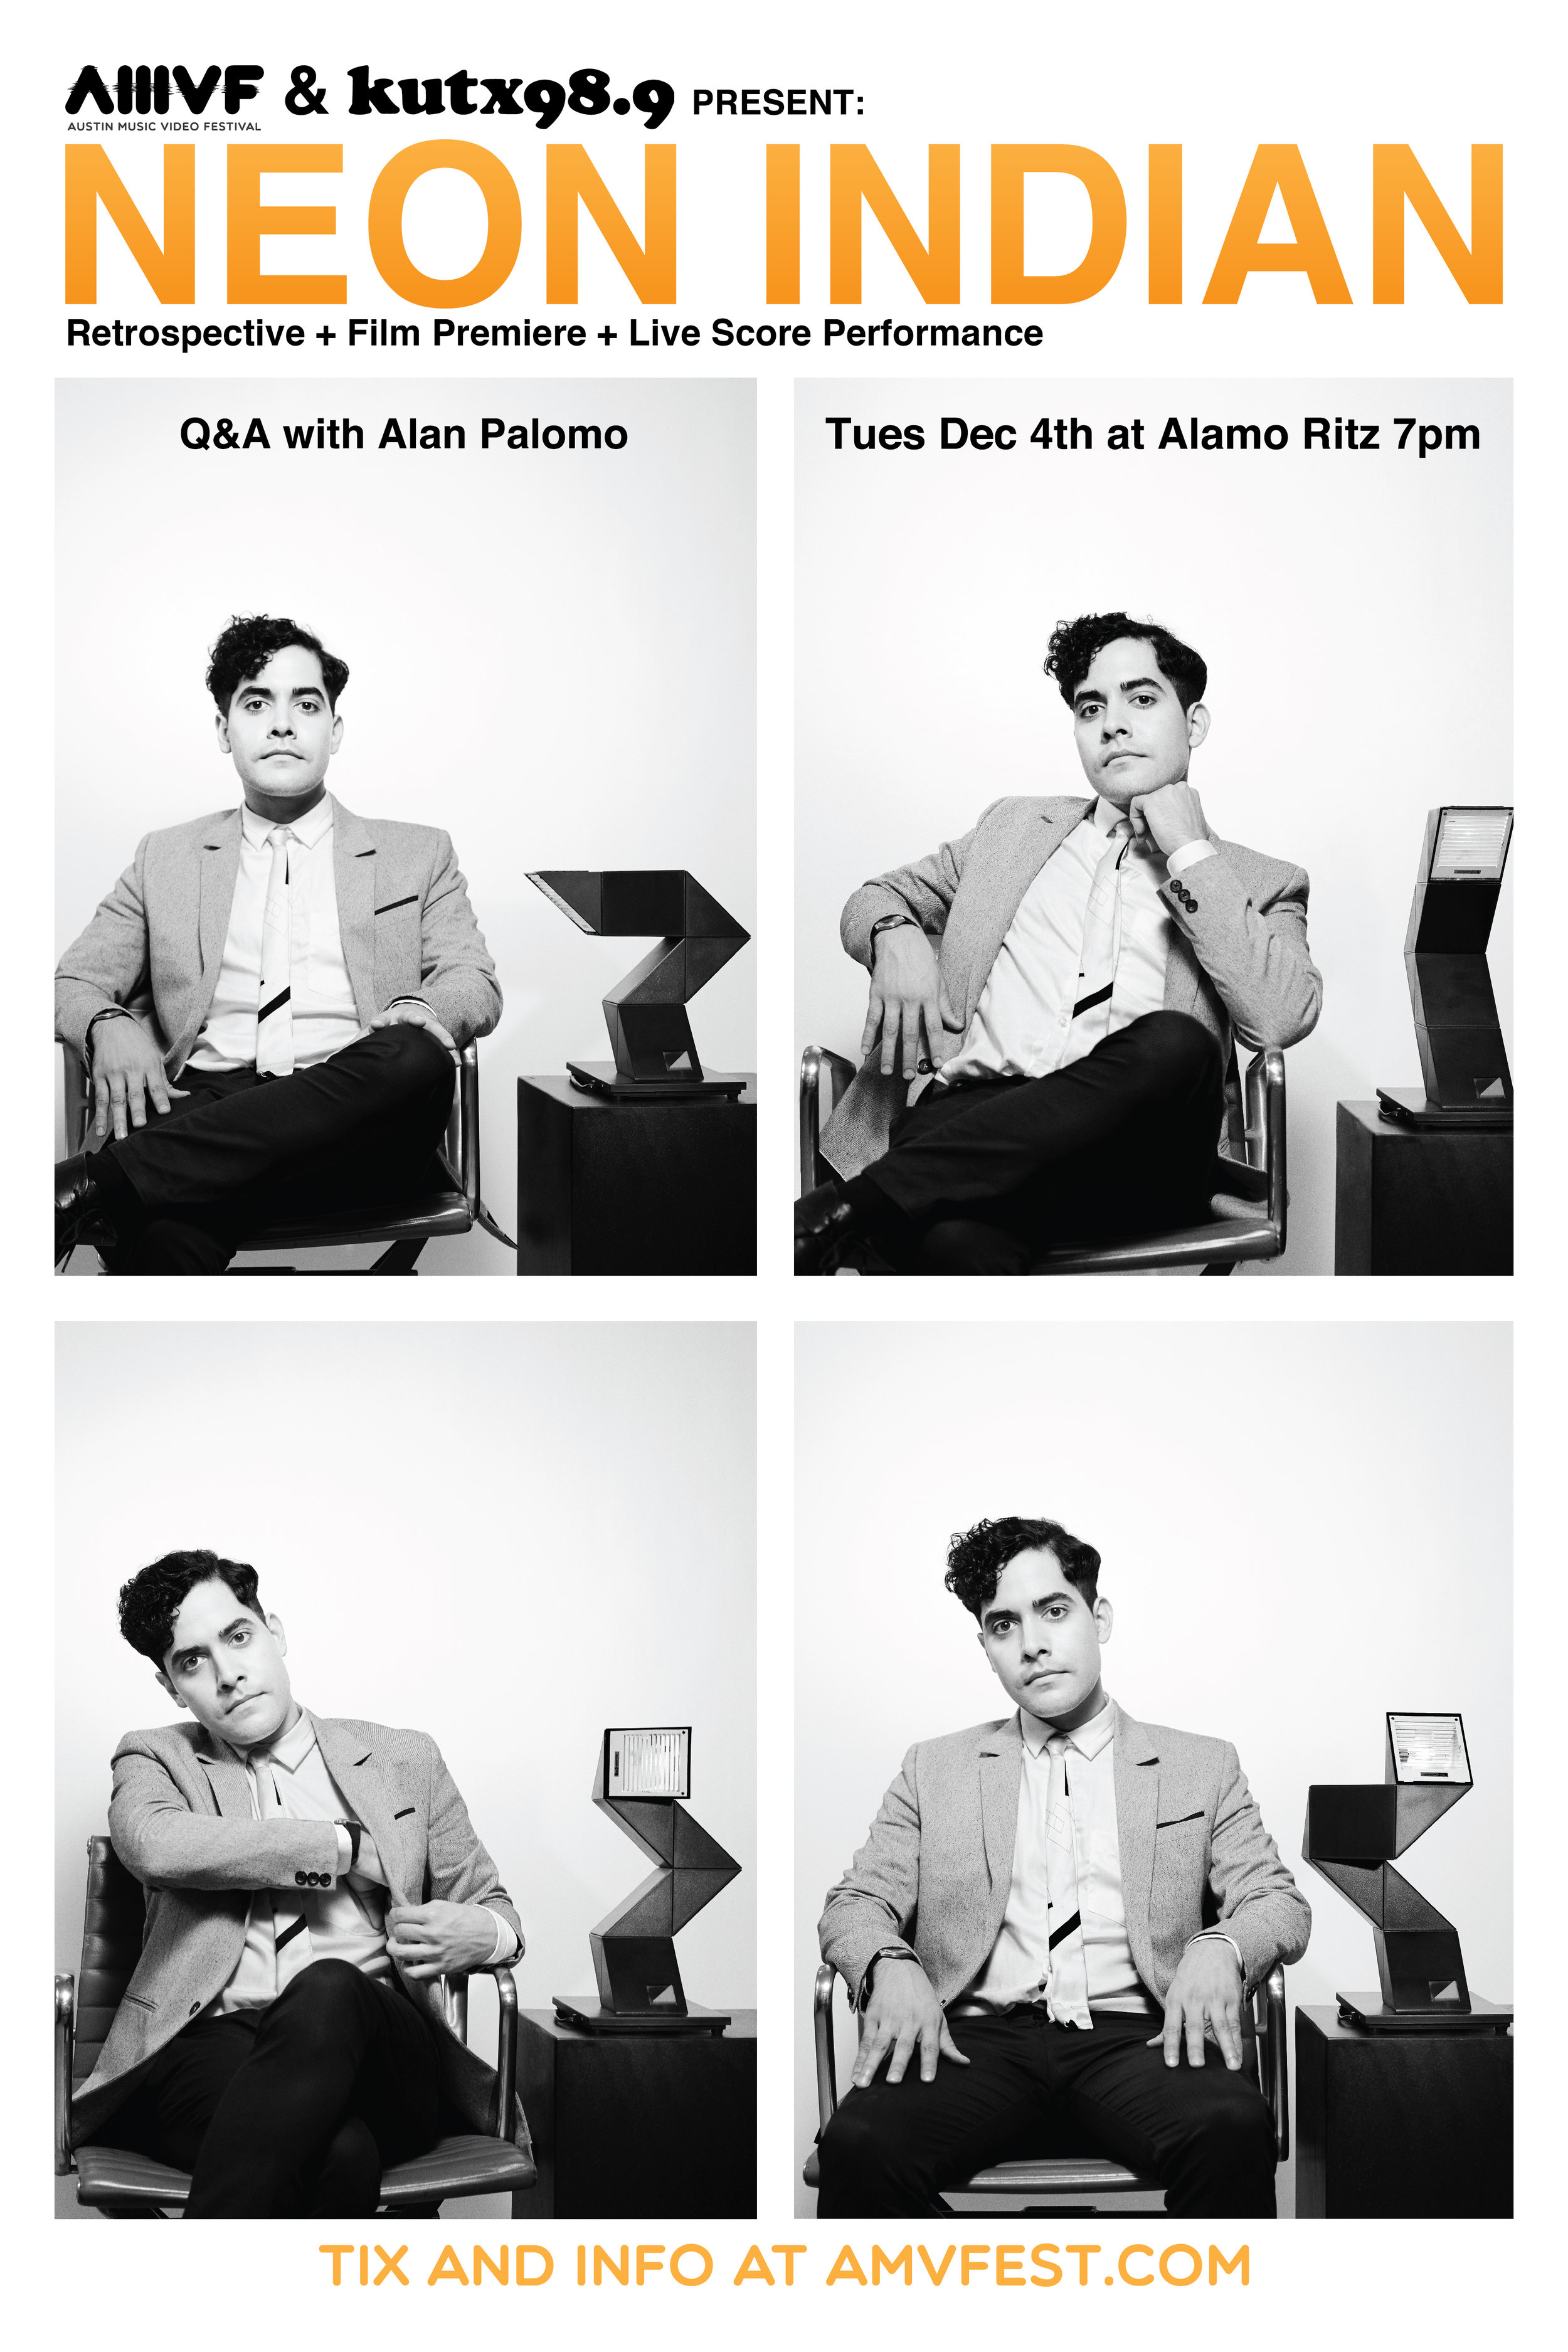 AMVF Event Posters_Neon Indian.jpg